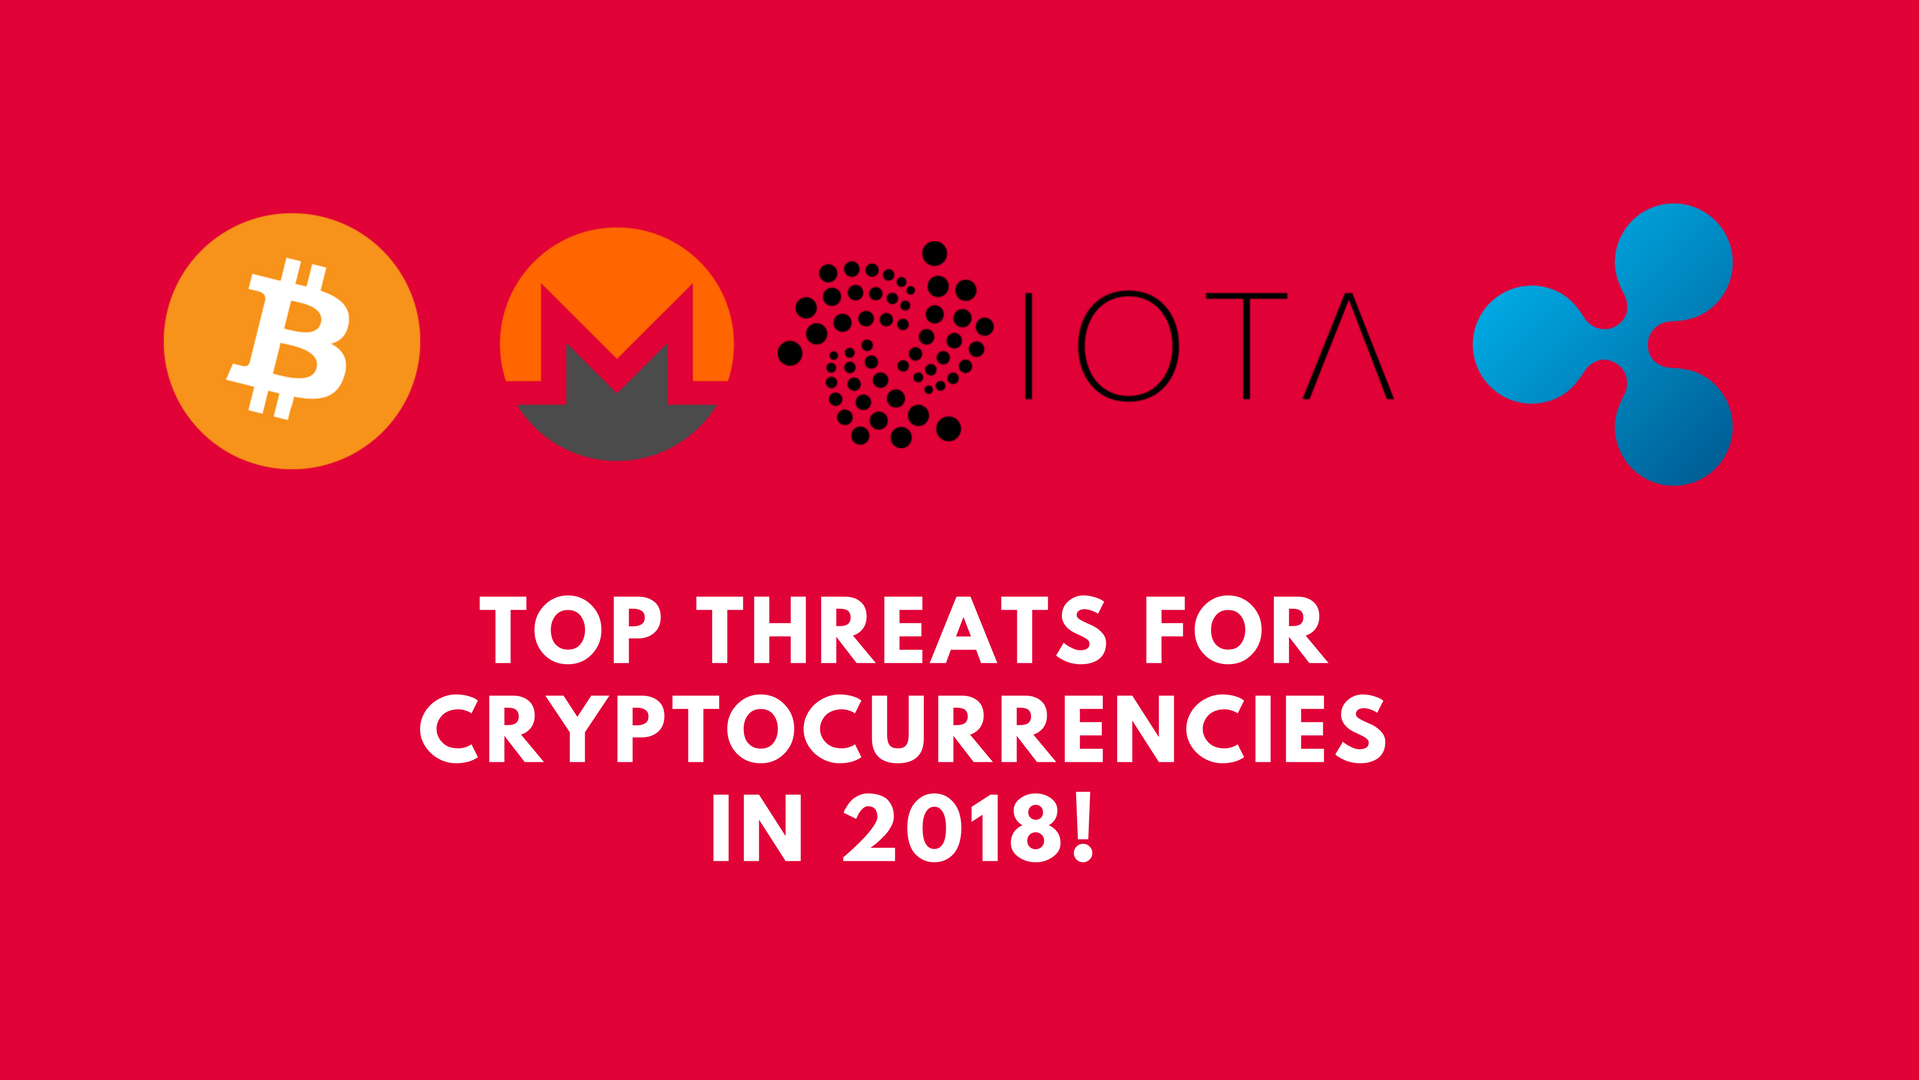 Top Threats to Cryptocurrencies in 2018!